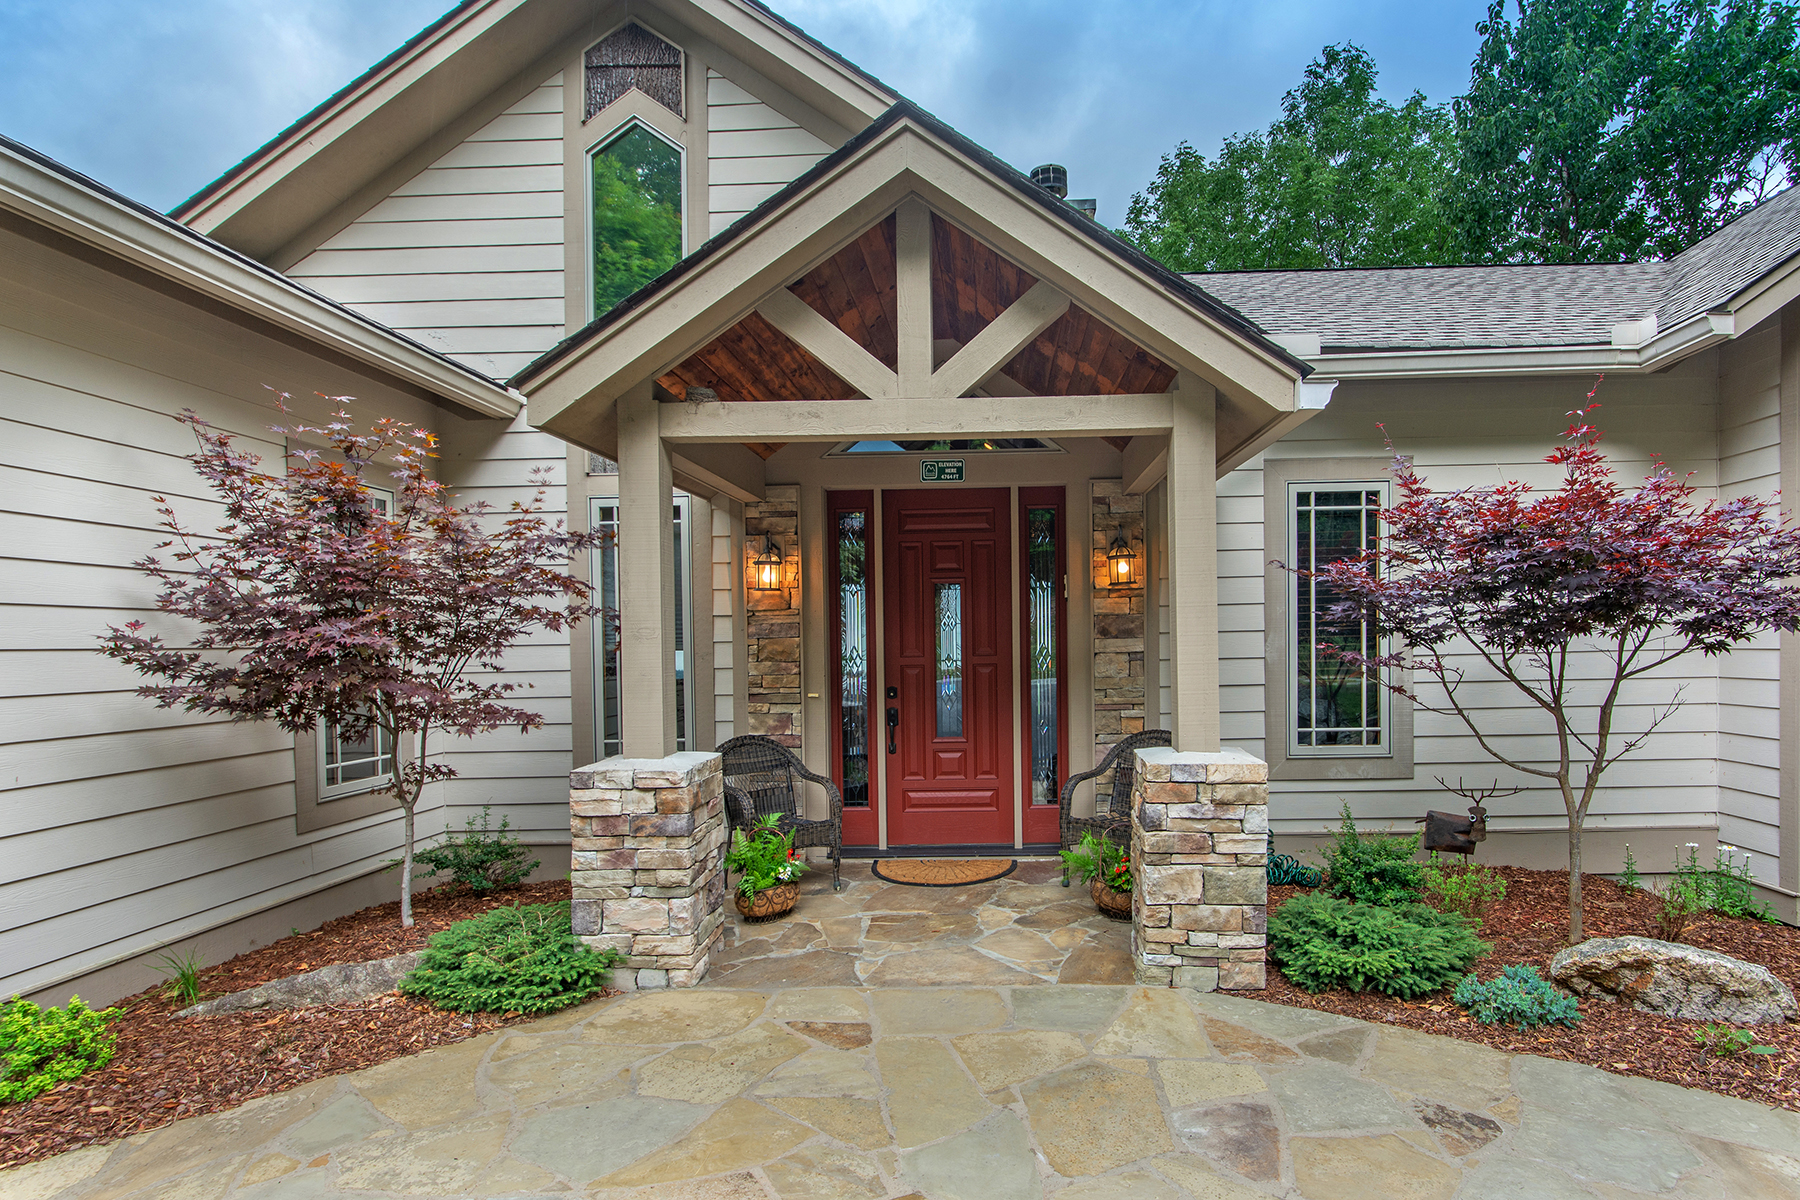 Single Family Homes for Active at BEECH MOUNTAIN - THE CLIFFS 114 Raven Rd Beech Mountain, North Carolina 28604 United States